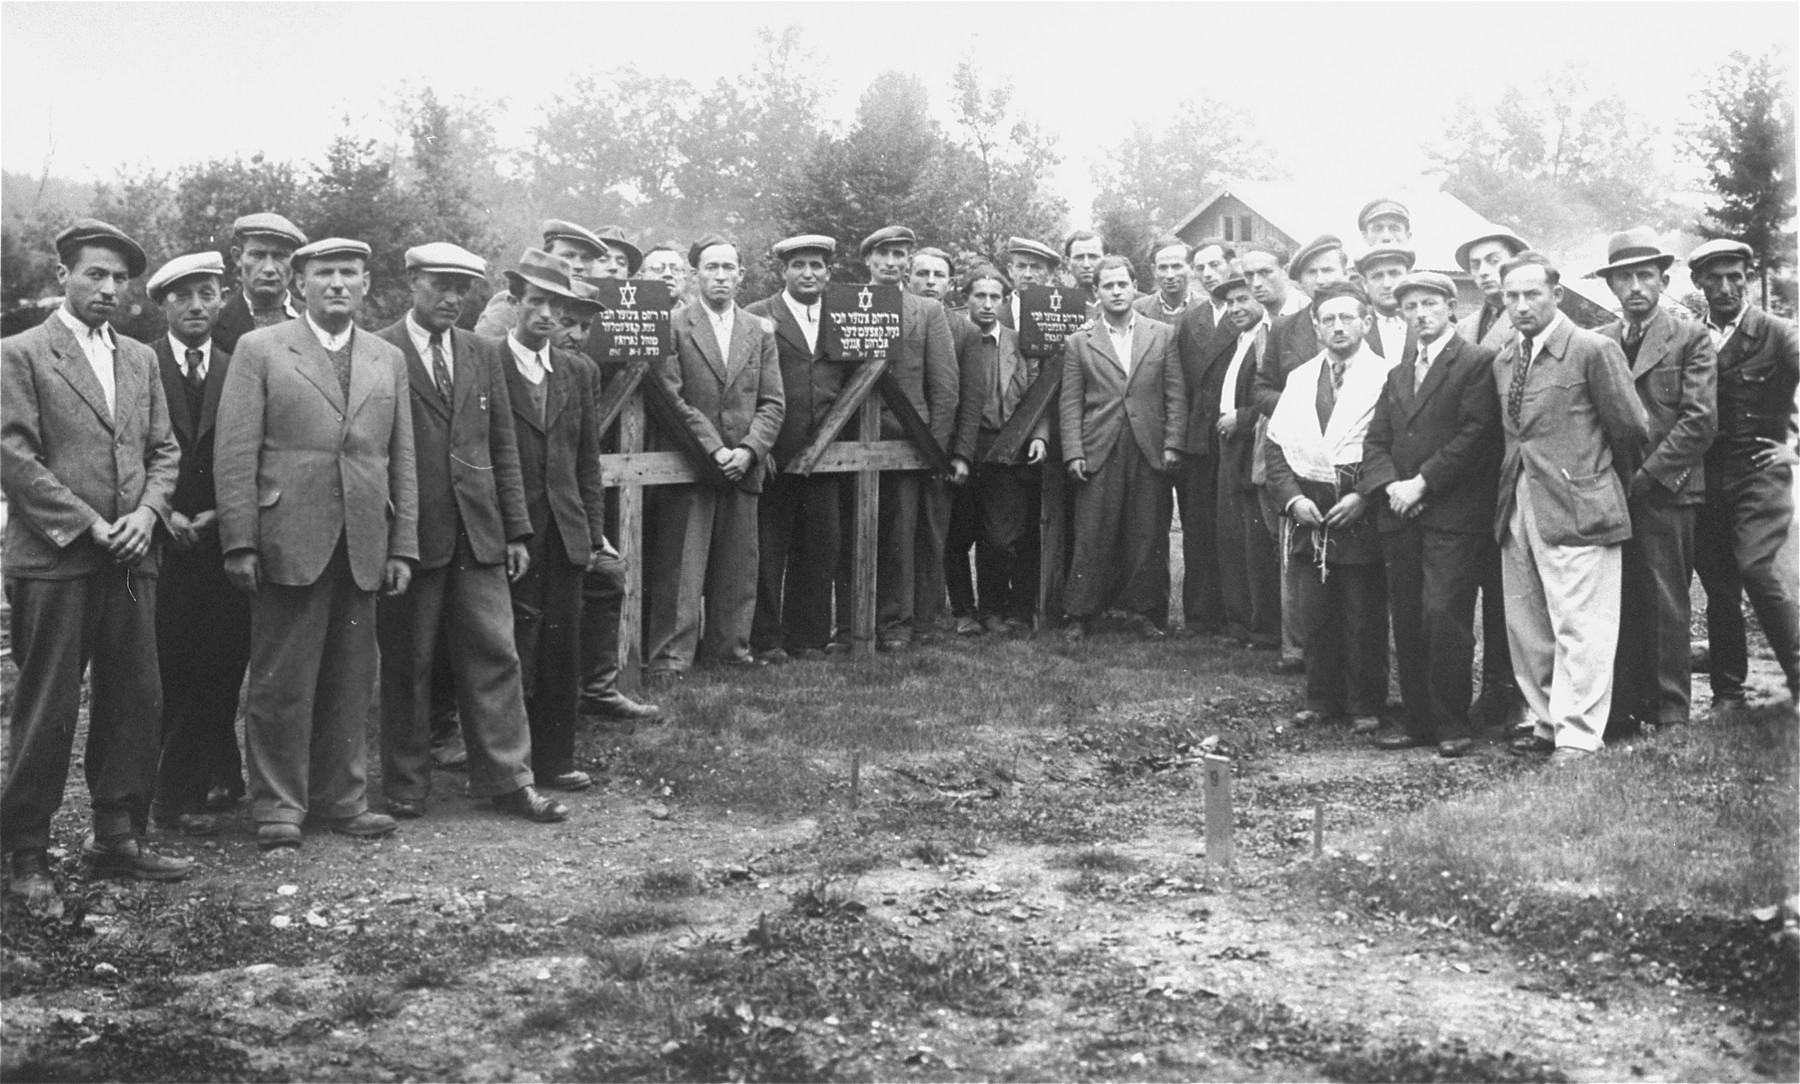 Jewish DPs gather for a memorial service in the Traunstein displaced persons camp.  Those pictured include Yankel Yakubovitz (the tall man in the center) and his brother, Aaron Yakubovitz.